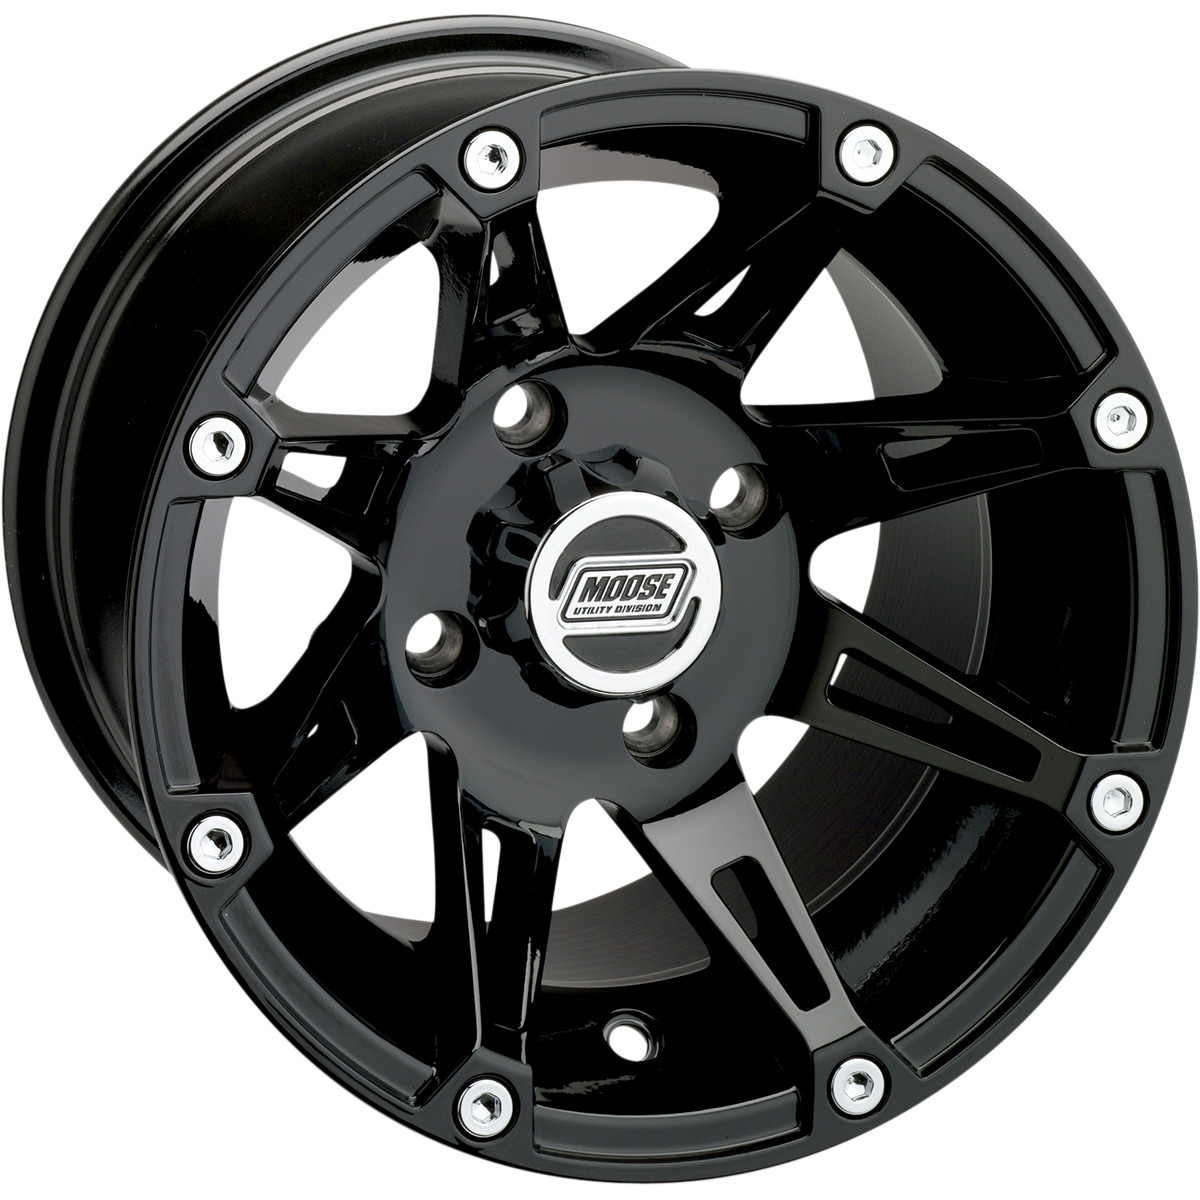 Moose Racing 387X Wheel (Front) 12X7 Black Fits 02-03 Kawasaki KVF650 PRAIRIE